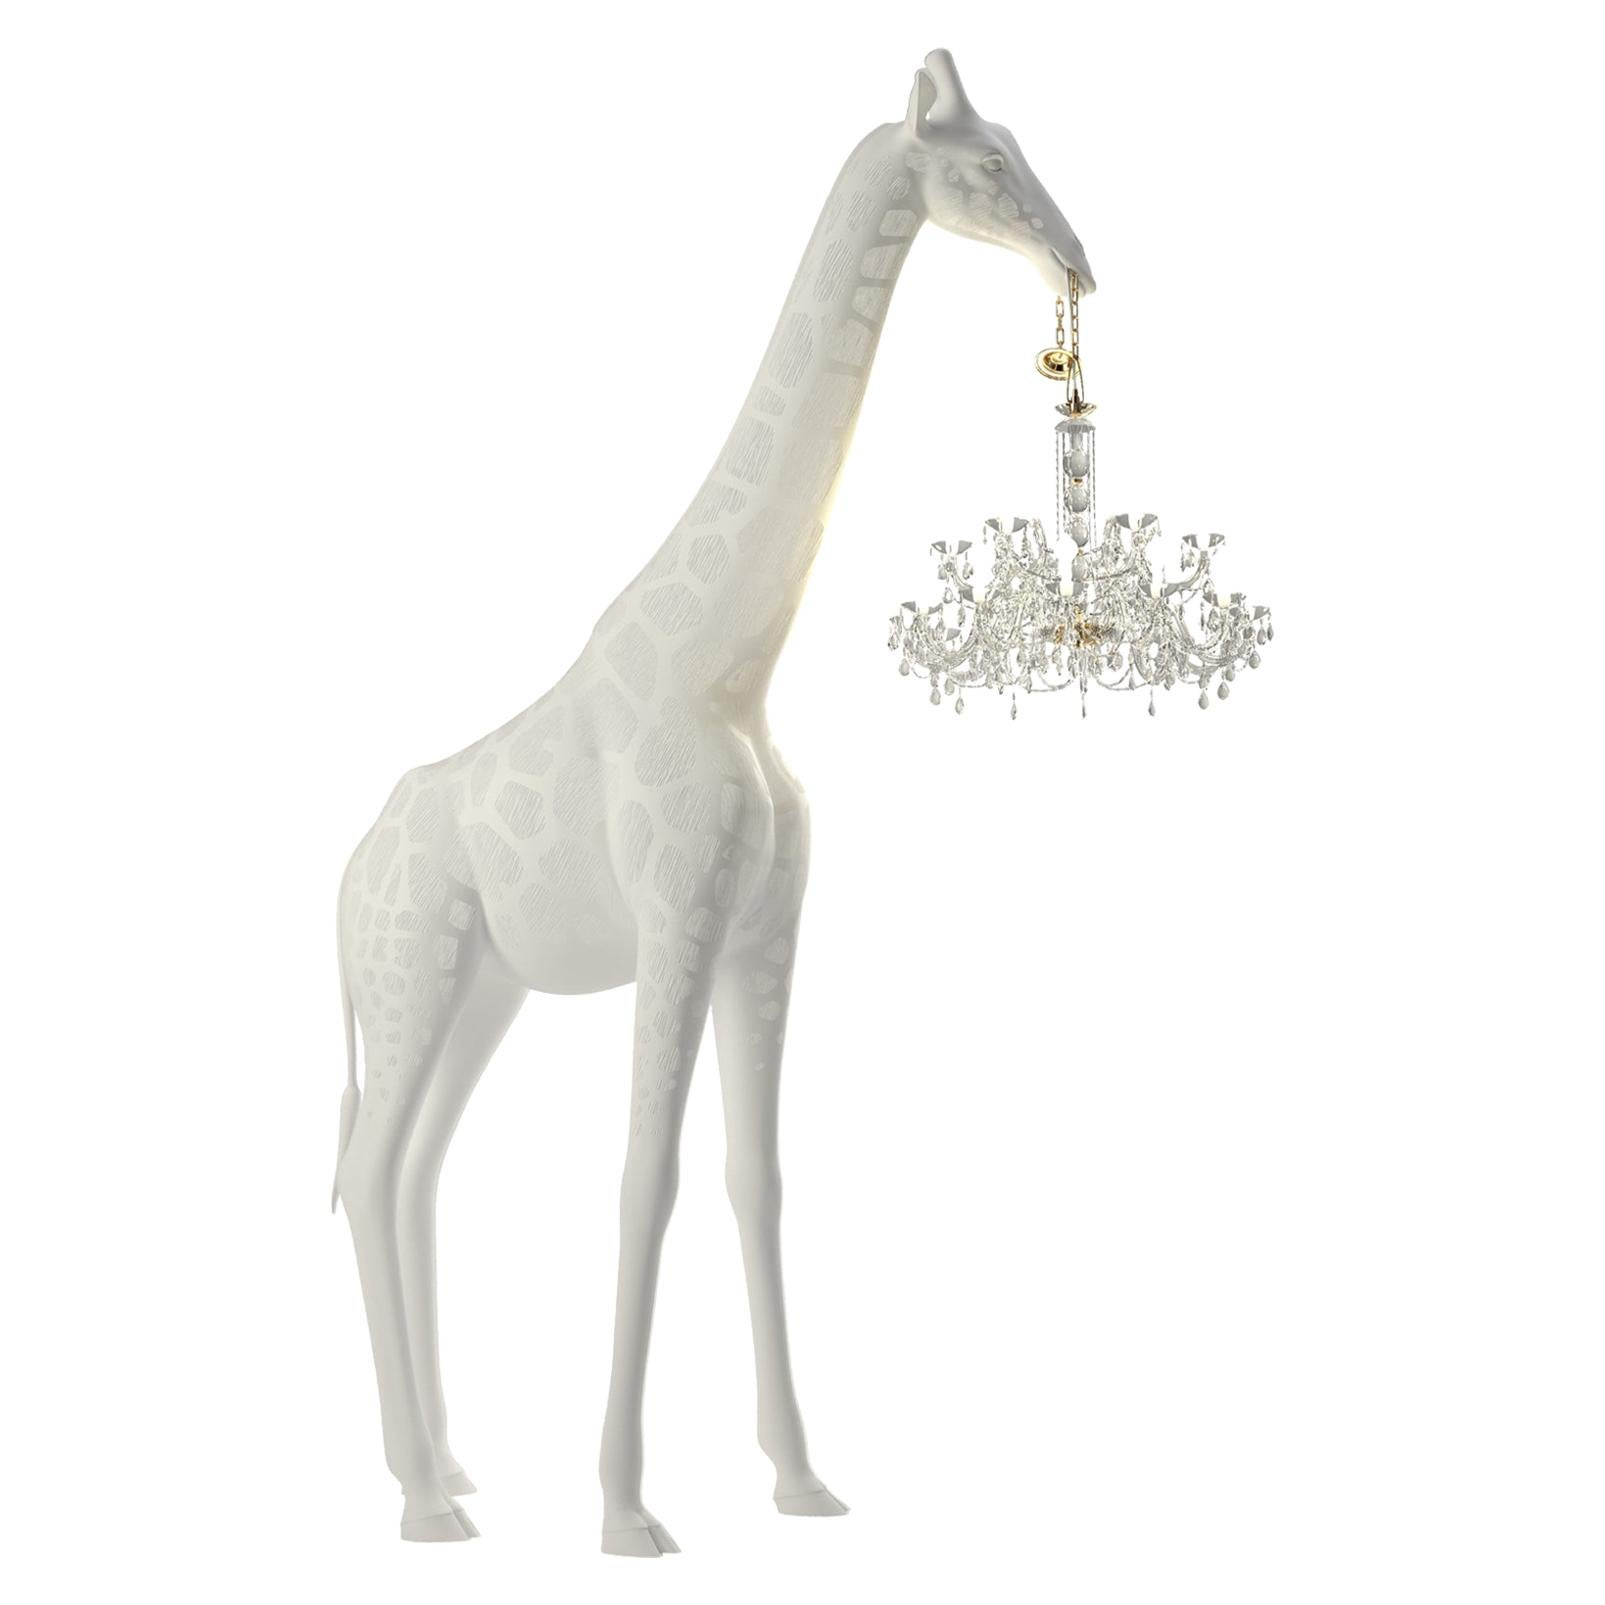 13 Feet Tall Life-Size White Giraffe Outdoor Chandelier, Designed by Marcantonio